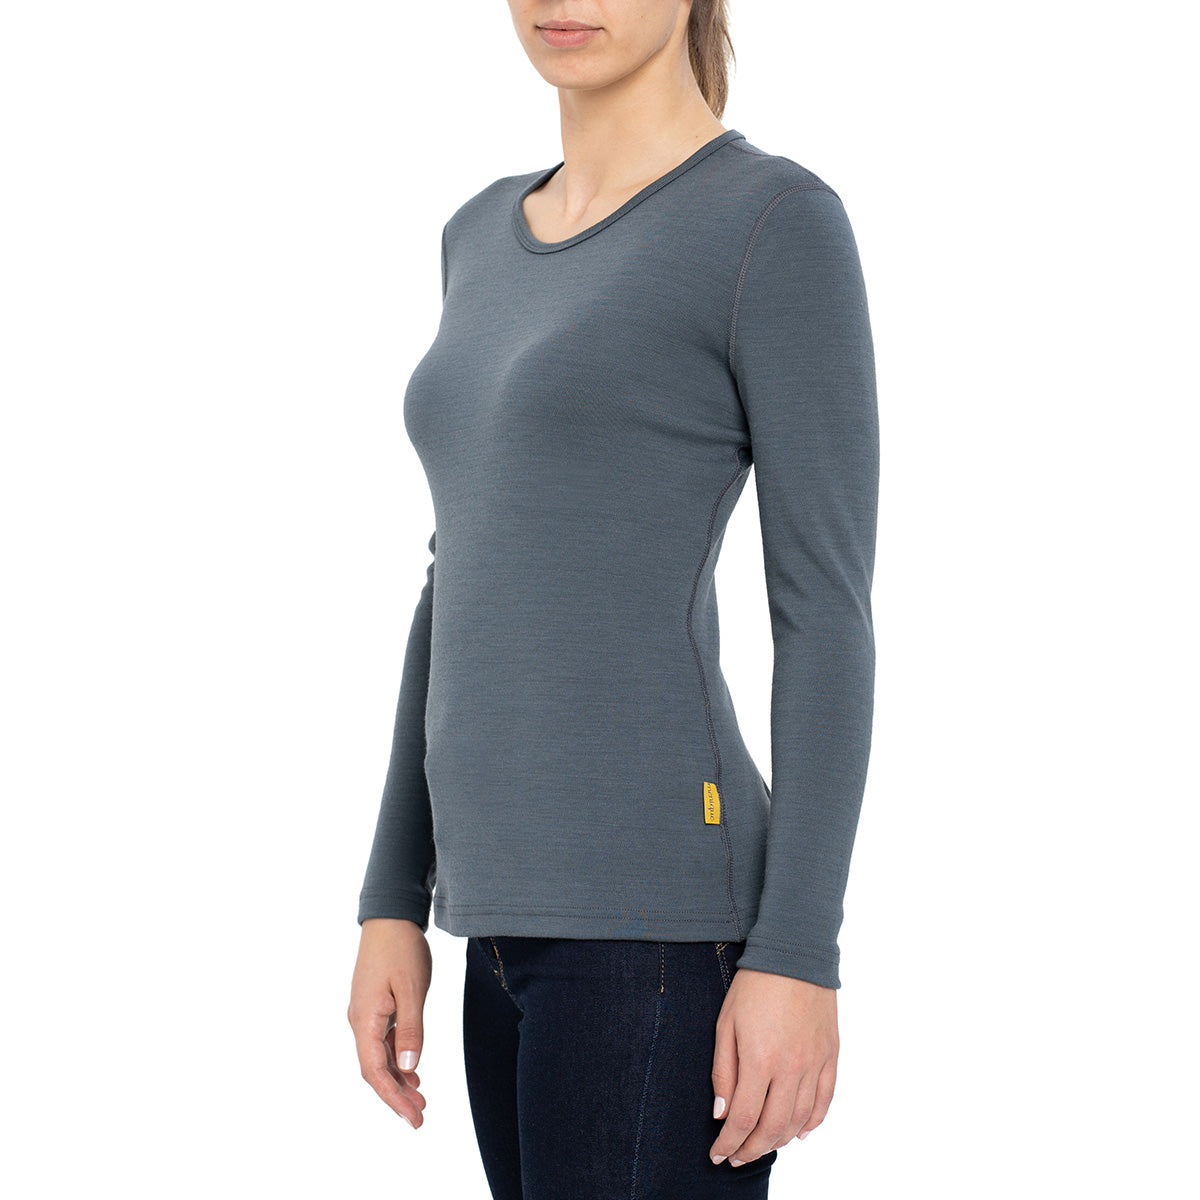 menique Women's Merino 250 Long Sleeve Crew Perfect Grey Color